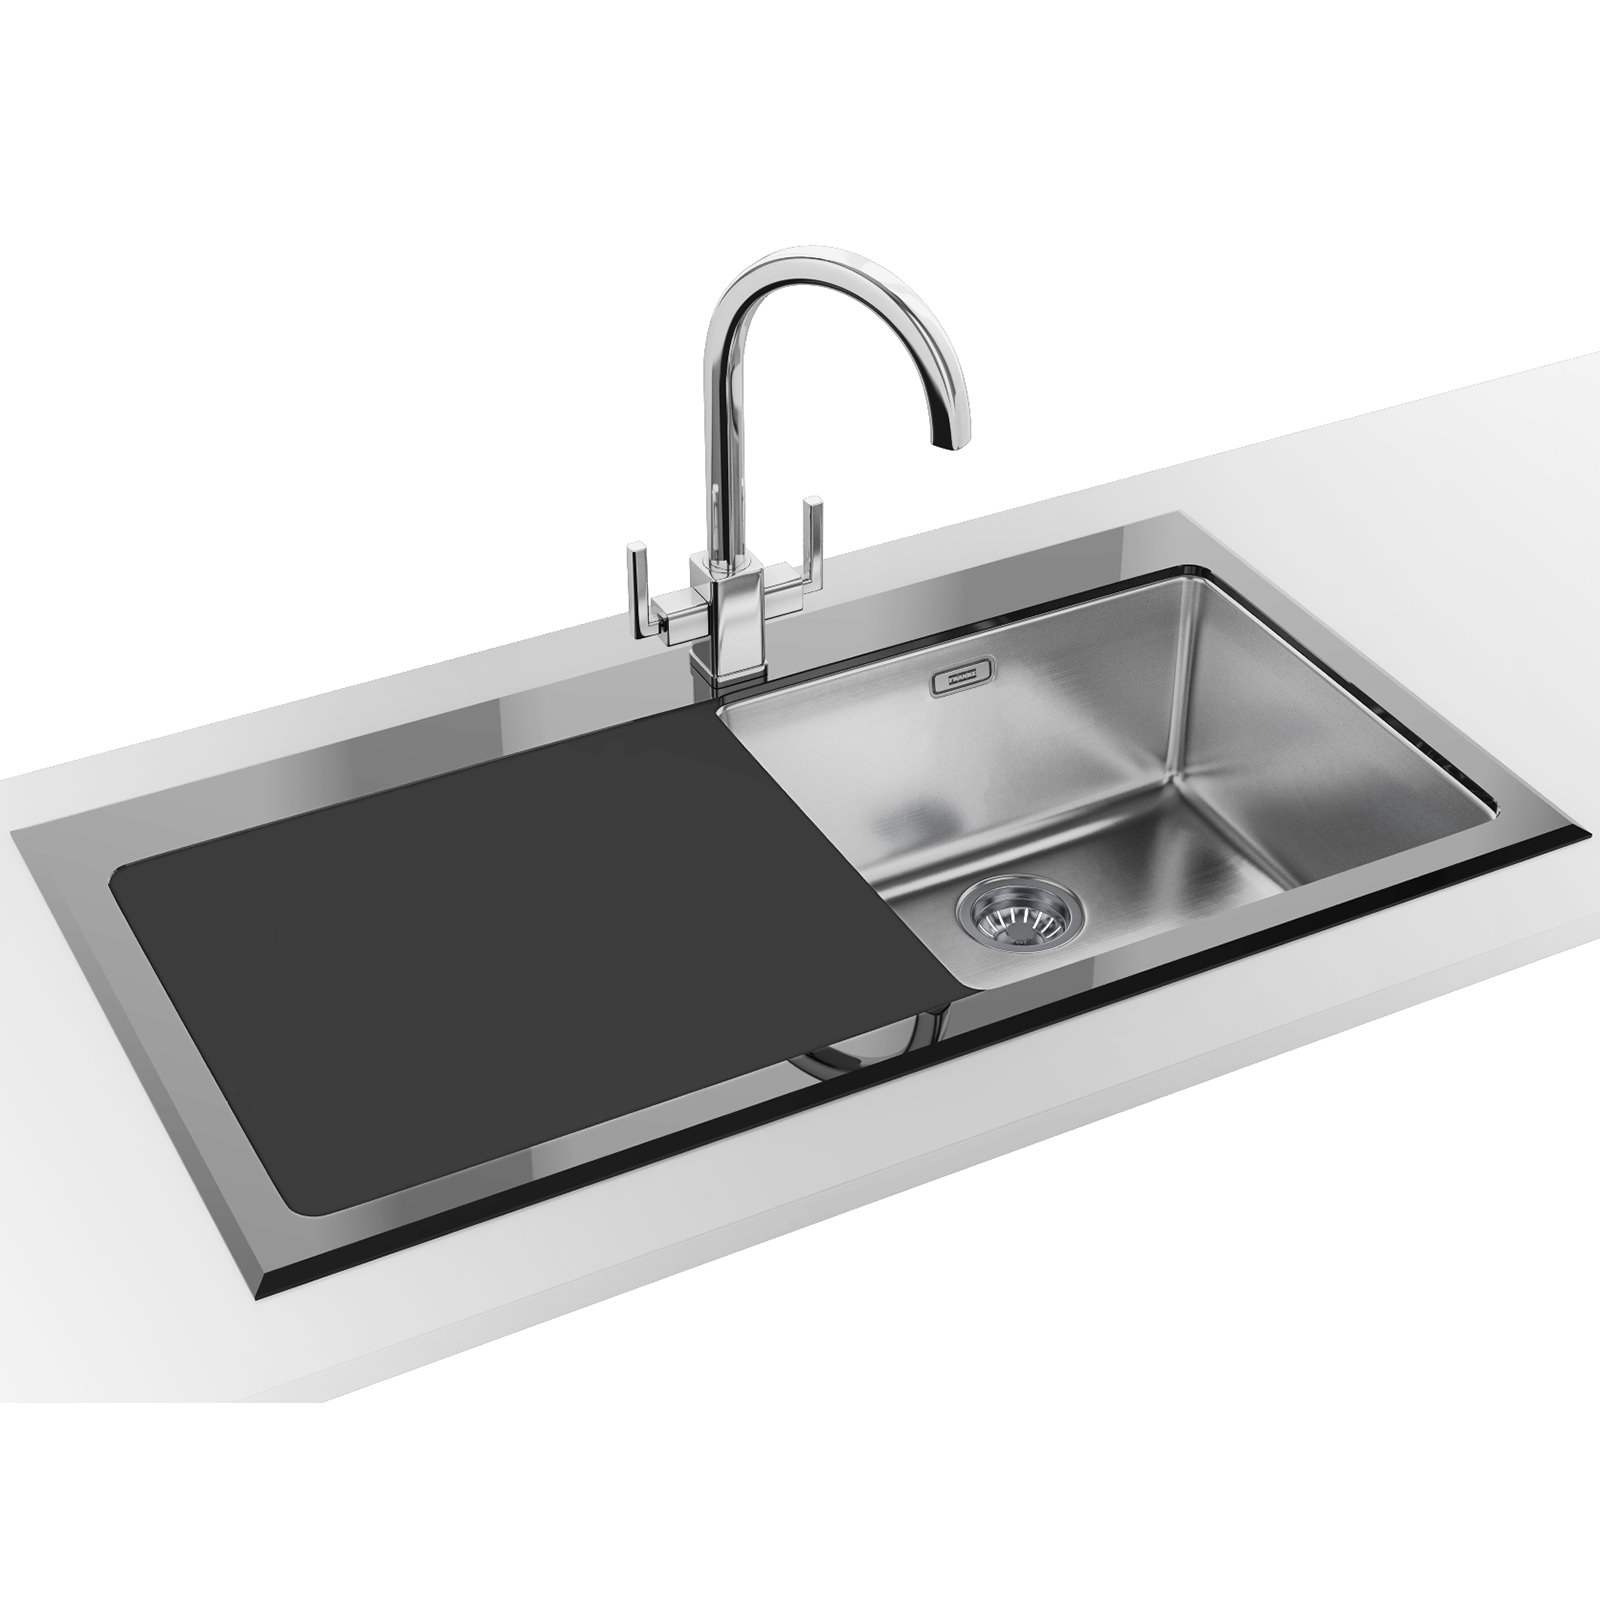 Franke Kubus Designer Pack Kbv 611 Black Glass Inset Sink And Tap 1010052390